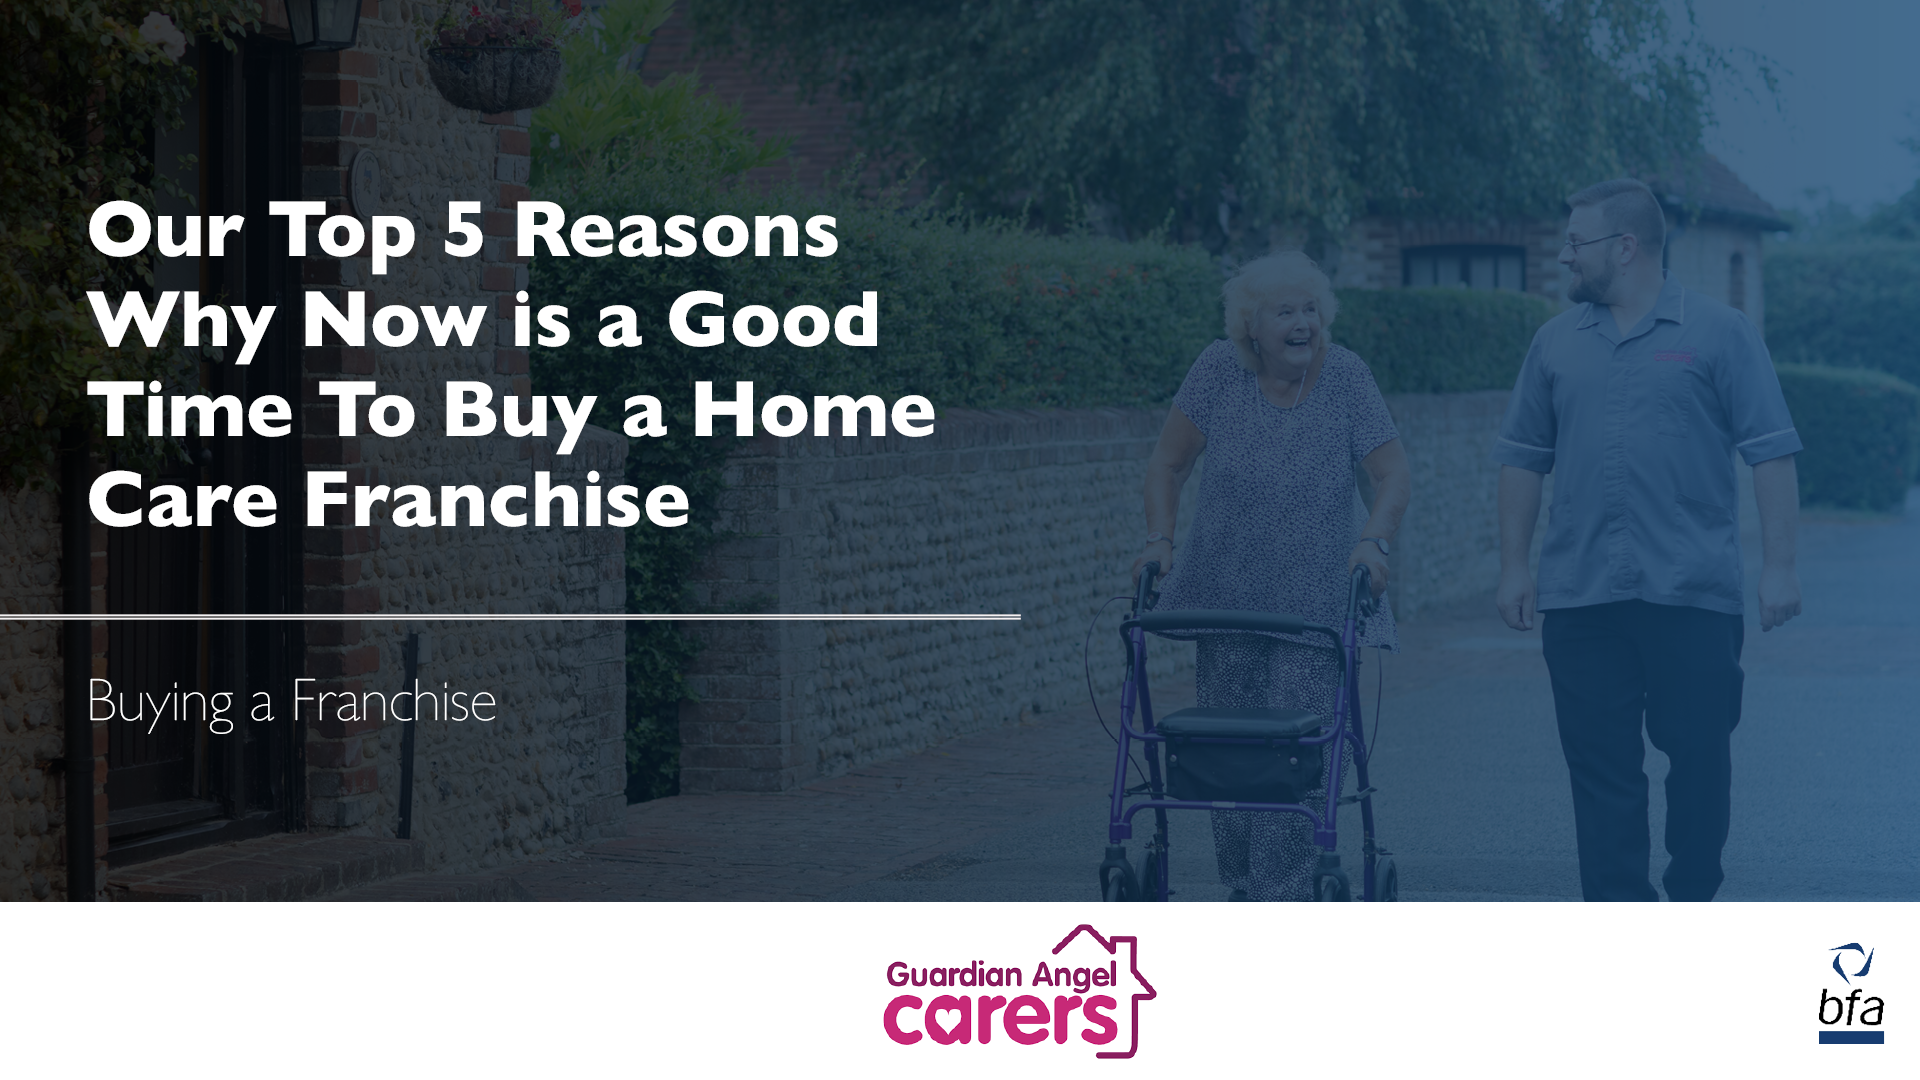 Our Top 5 Reasons Why Now is a Good Time To Buy a Home Care Franchise